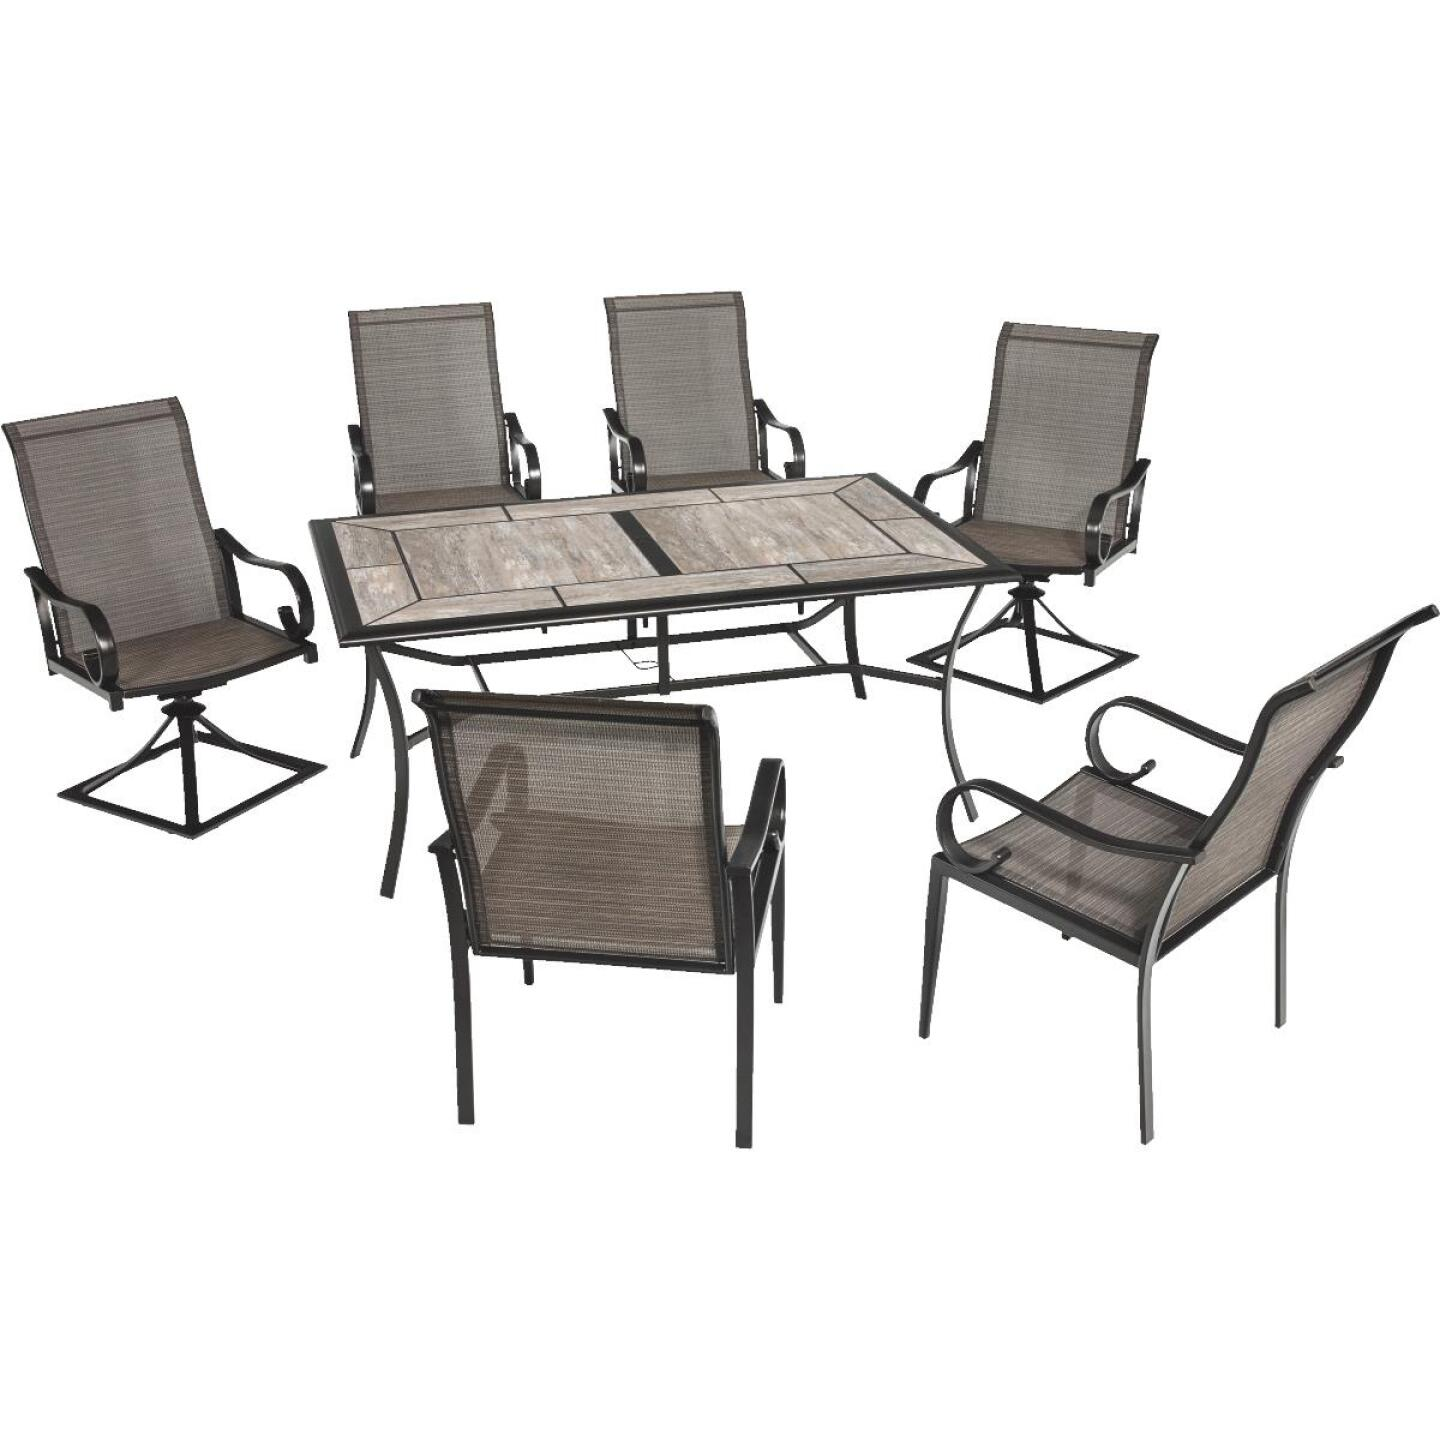 Outdoor Expressions Berkshire 7-Piece Dining Set Image 138